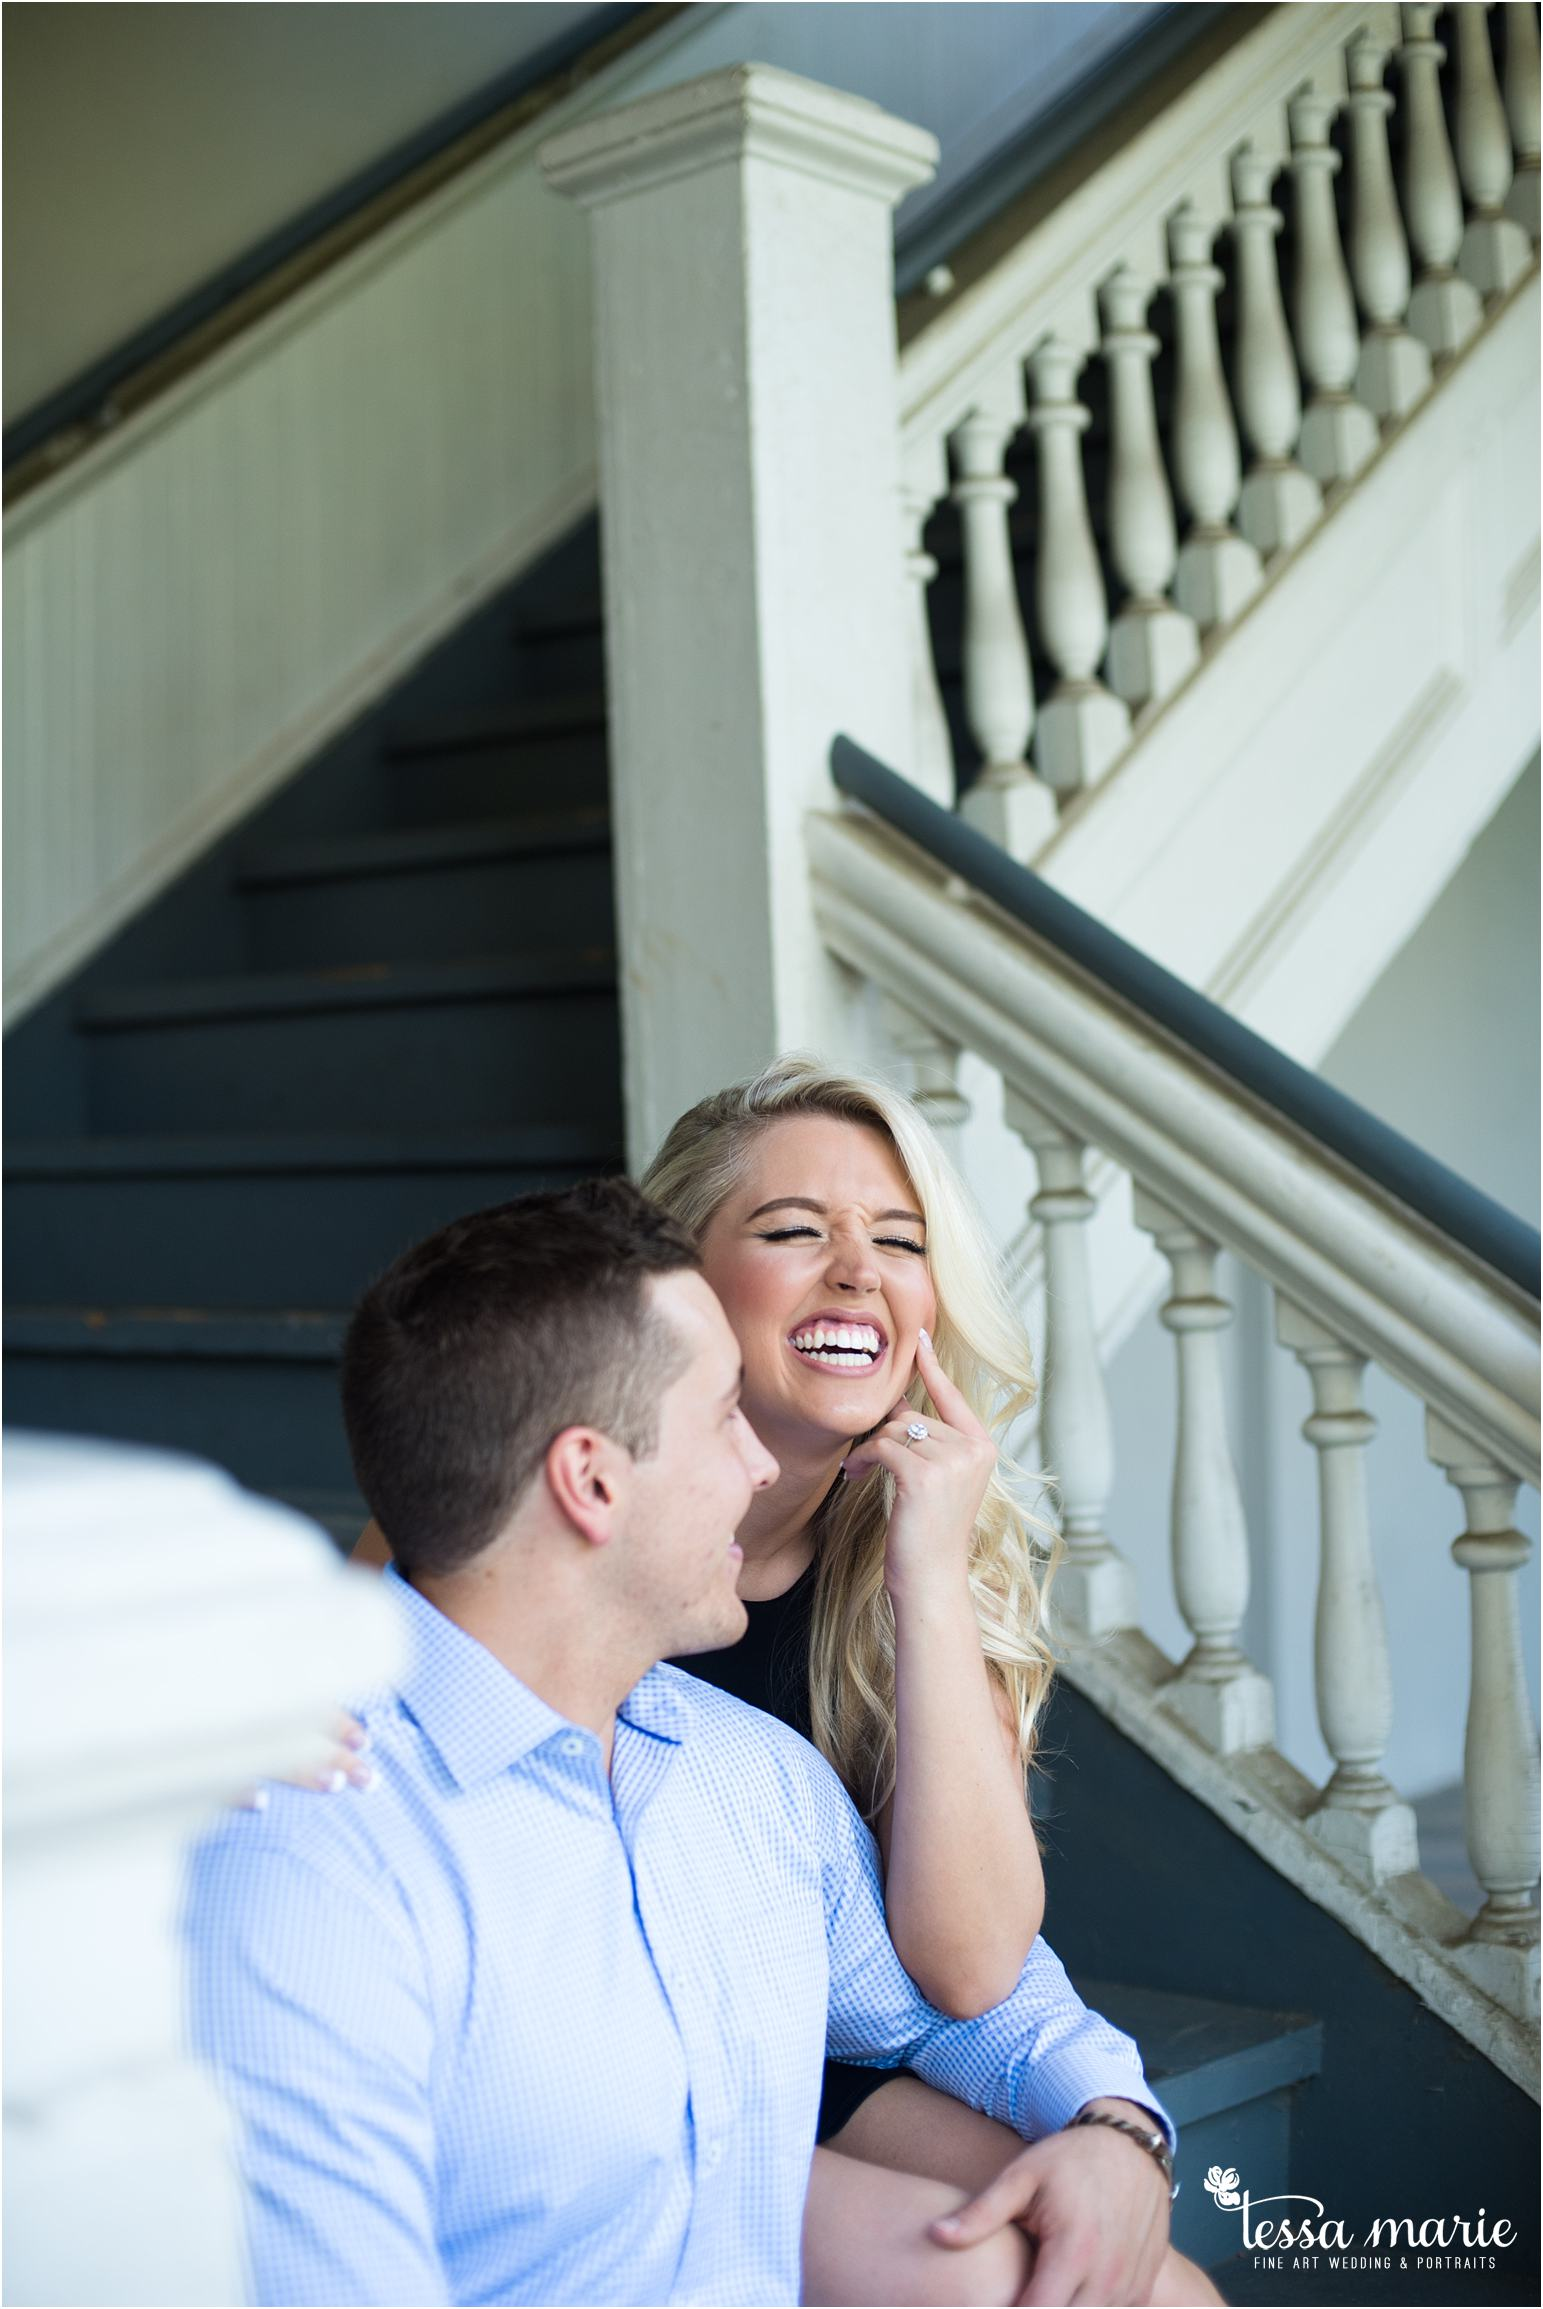 athens_ga_uga_university_of_georgia_engagement_pictures_north_campus_tessa_marie_weddings_athens_wedding_photographer_0021